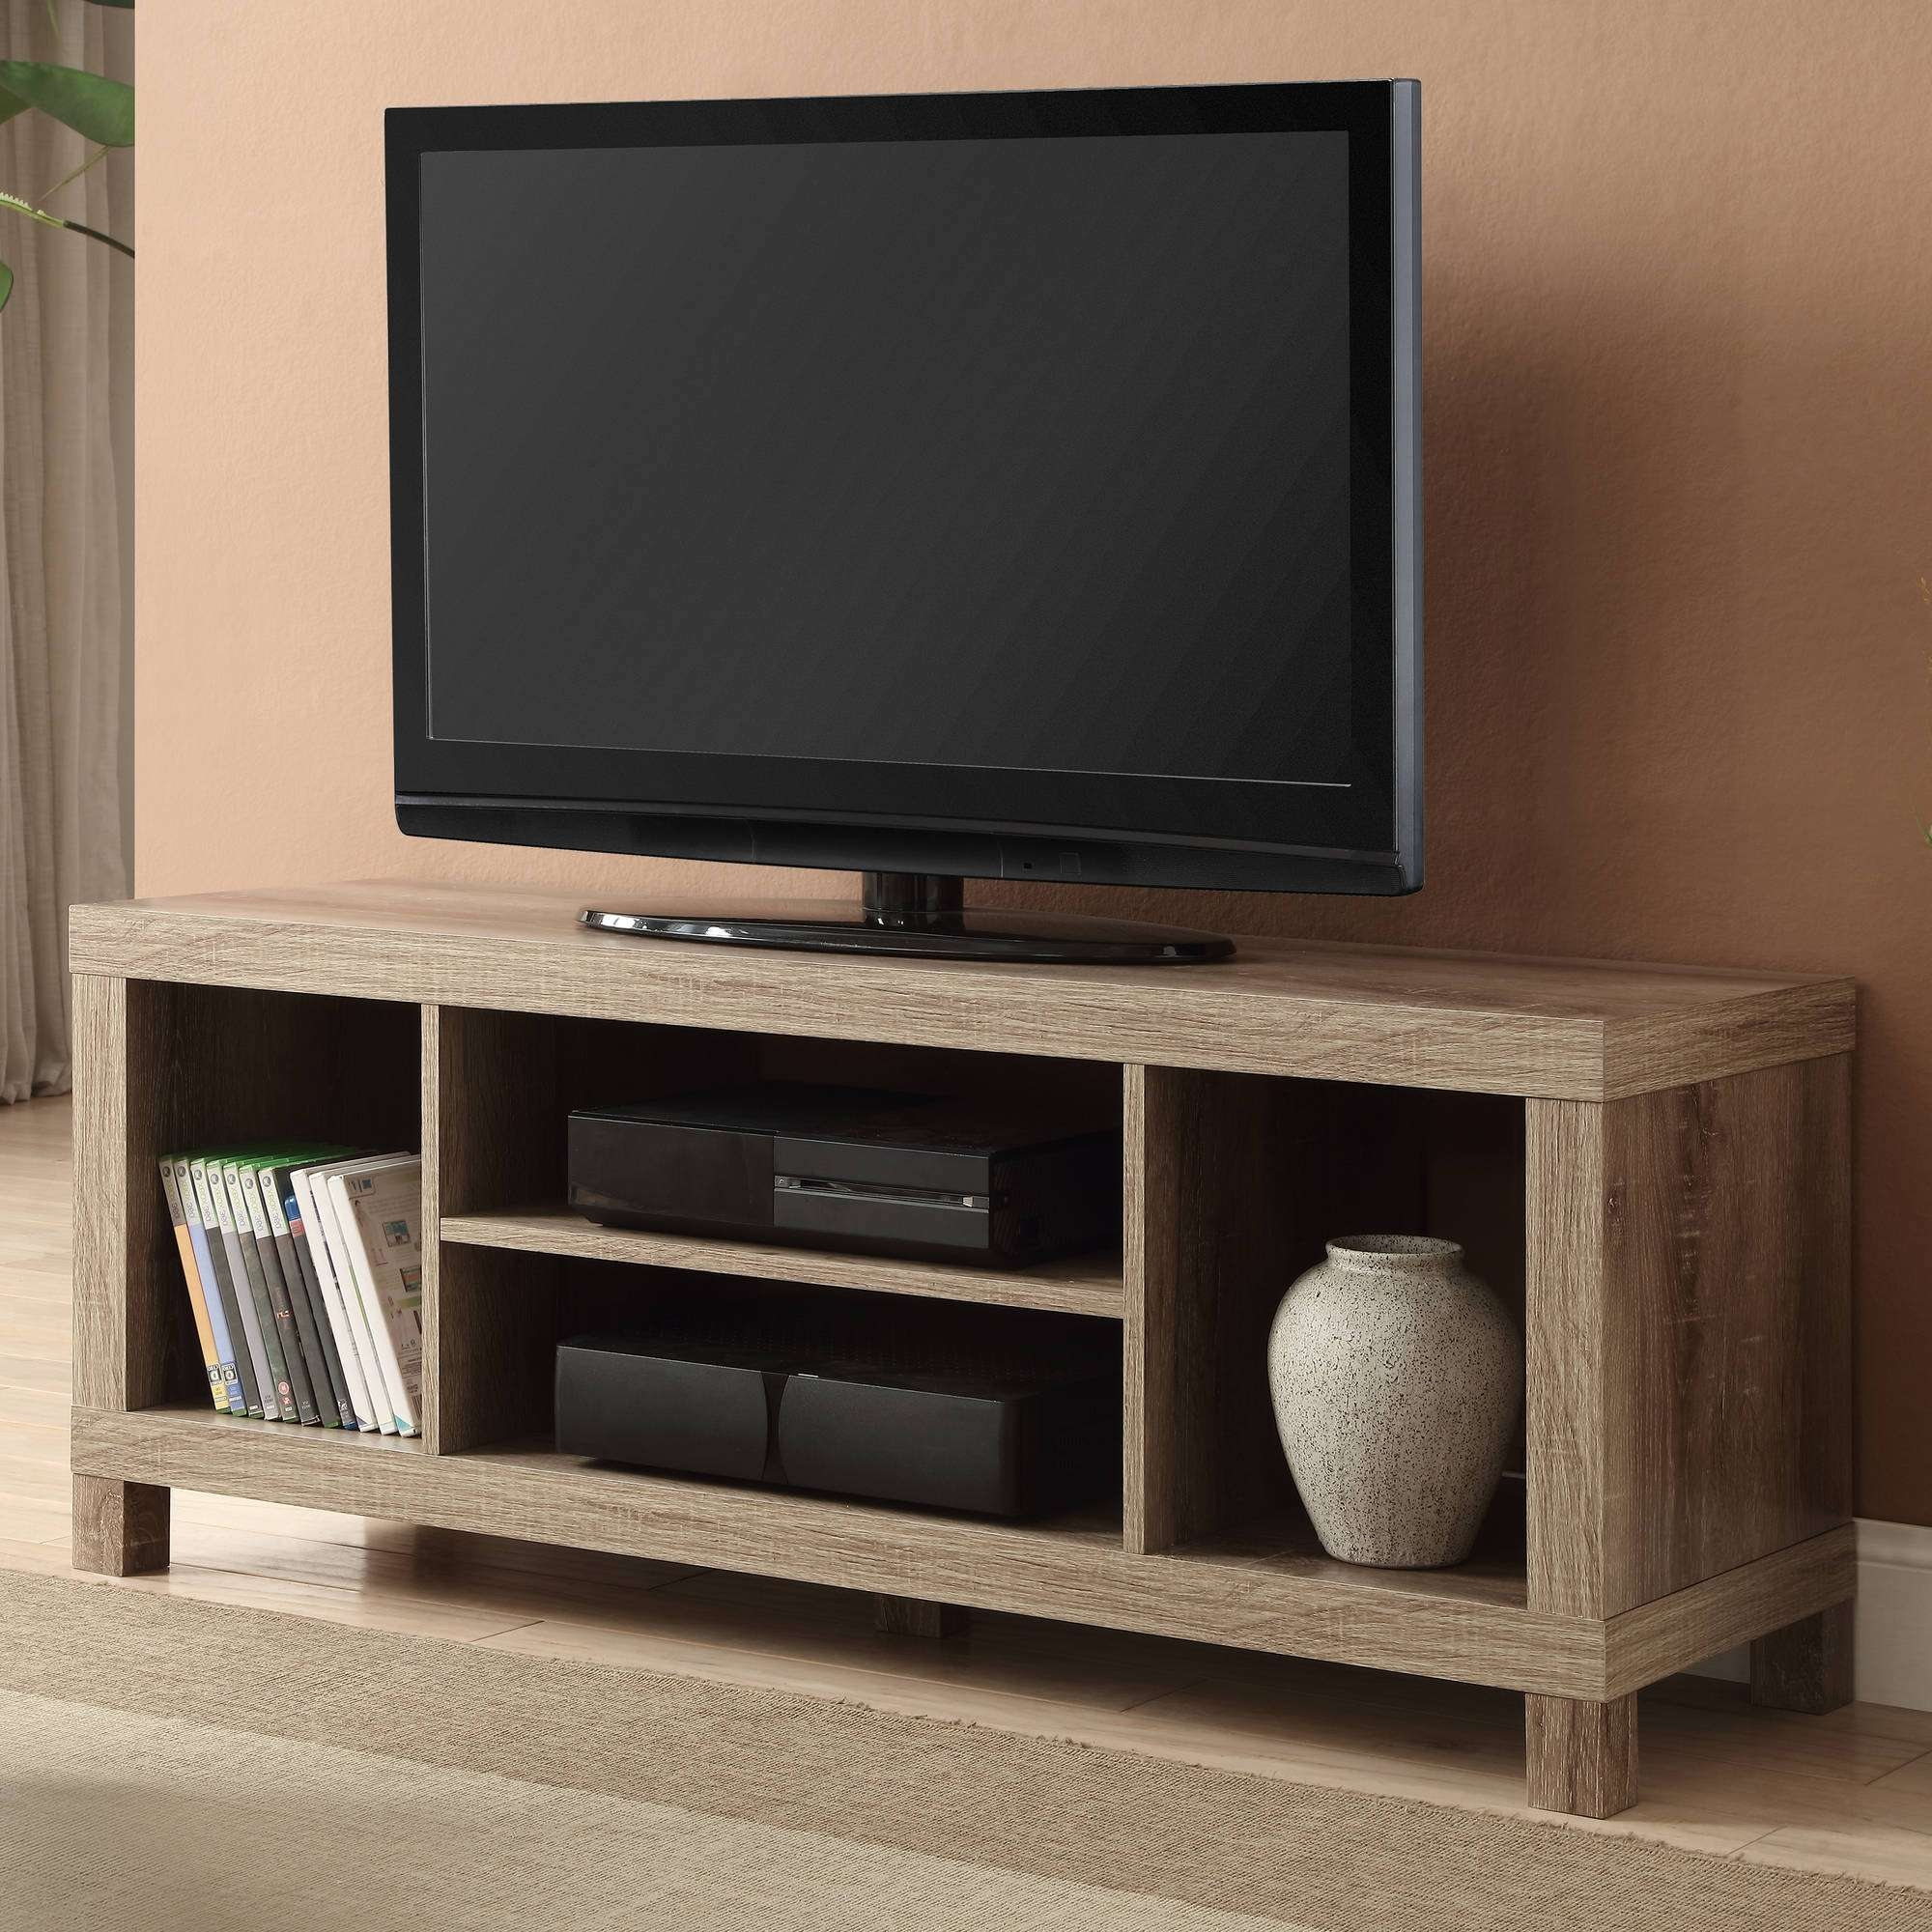 """Black Oak Tv Stand For Tvs Up To 42"""" – Walmart Regarding Oak Tv Stands For Flat Screens (View 9 of 15)"""